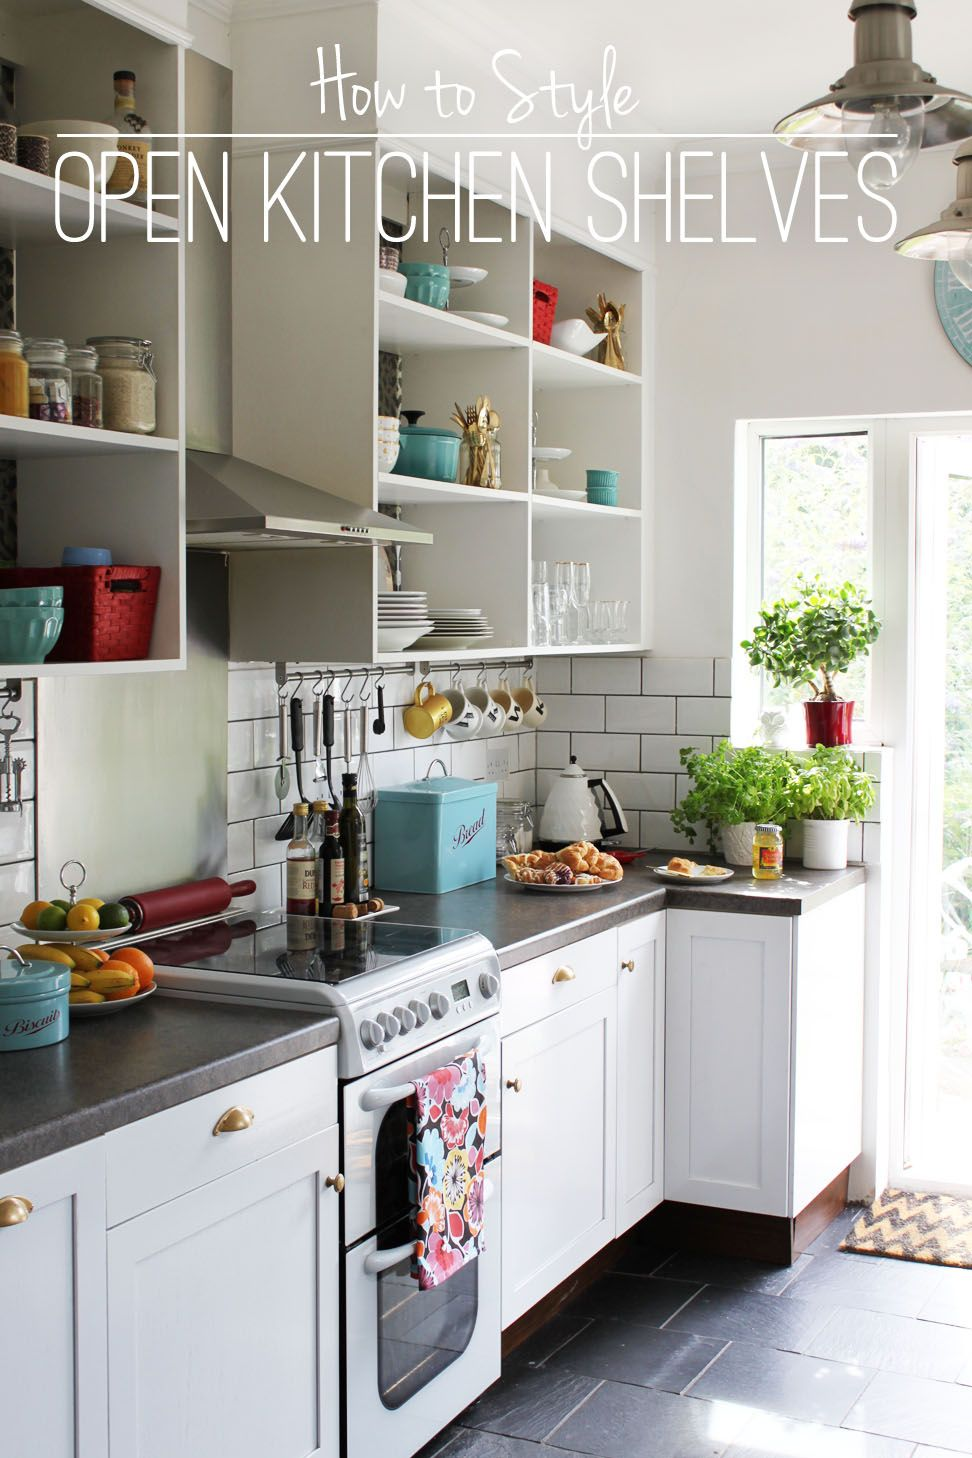 open kitchen shelves yes makes you wanna keep them clean and organized house idea on kitchen decor open shelves id=58969